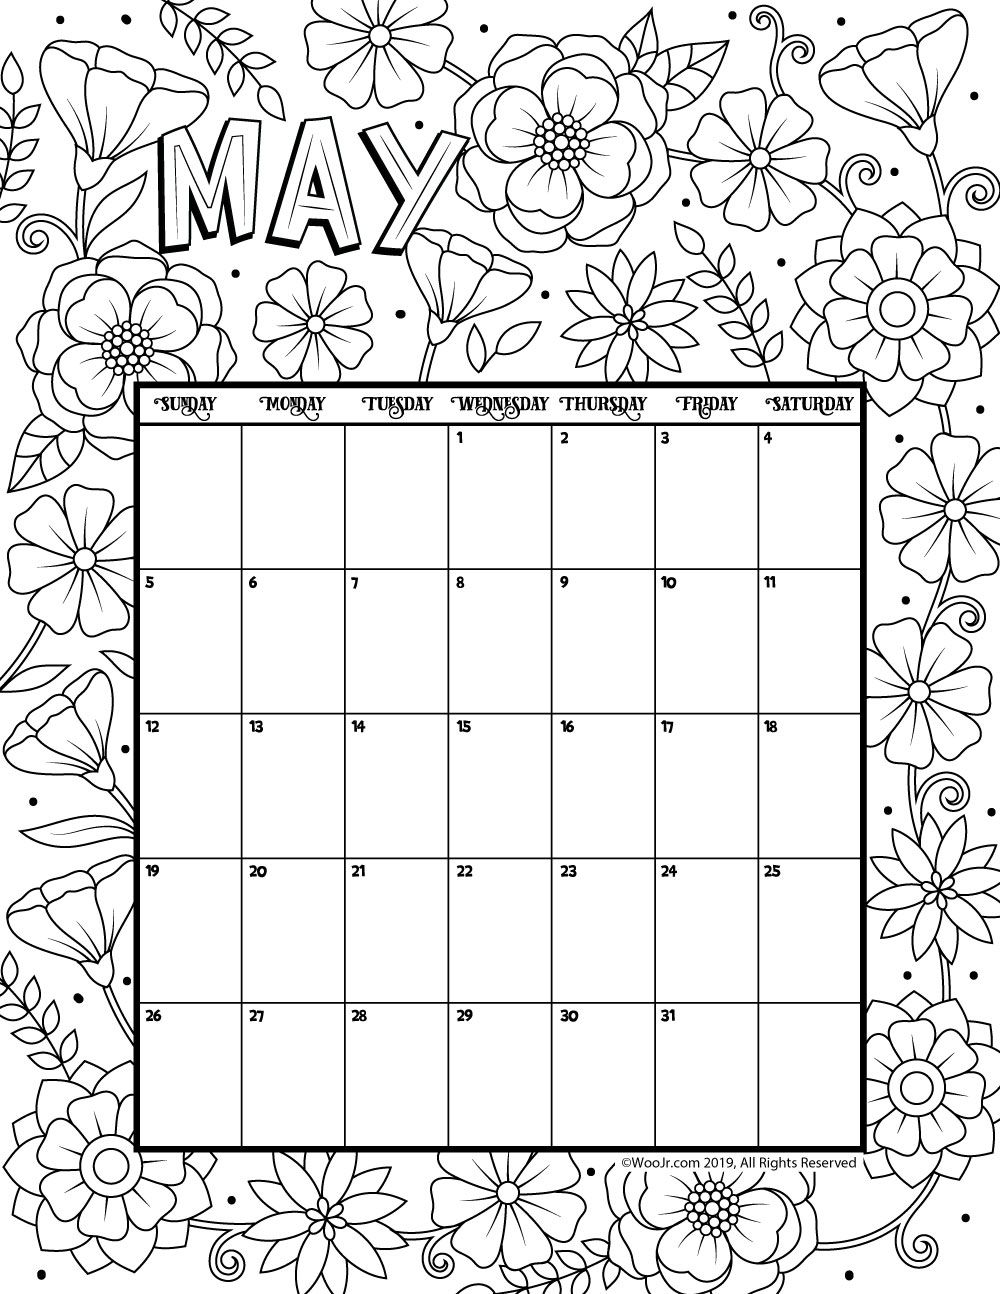 coloring pages printable for may - photo#34